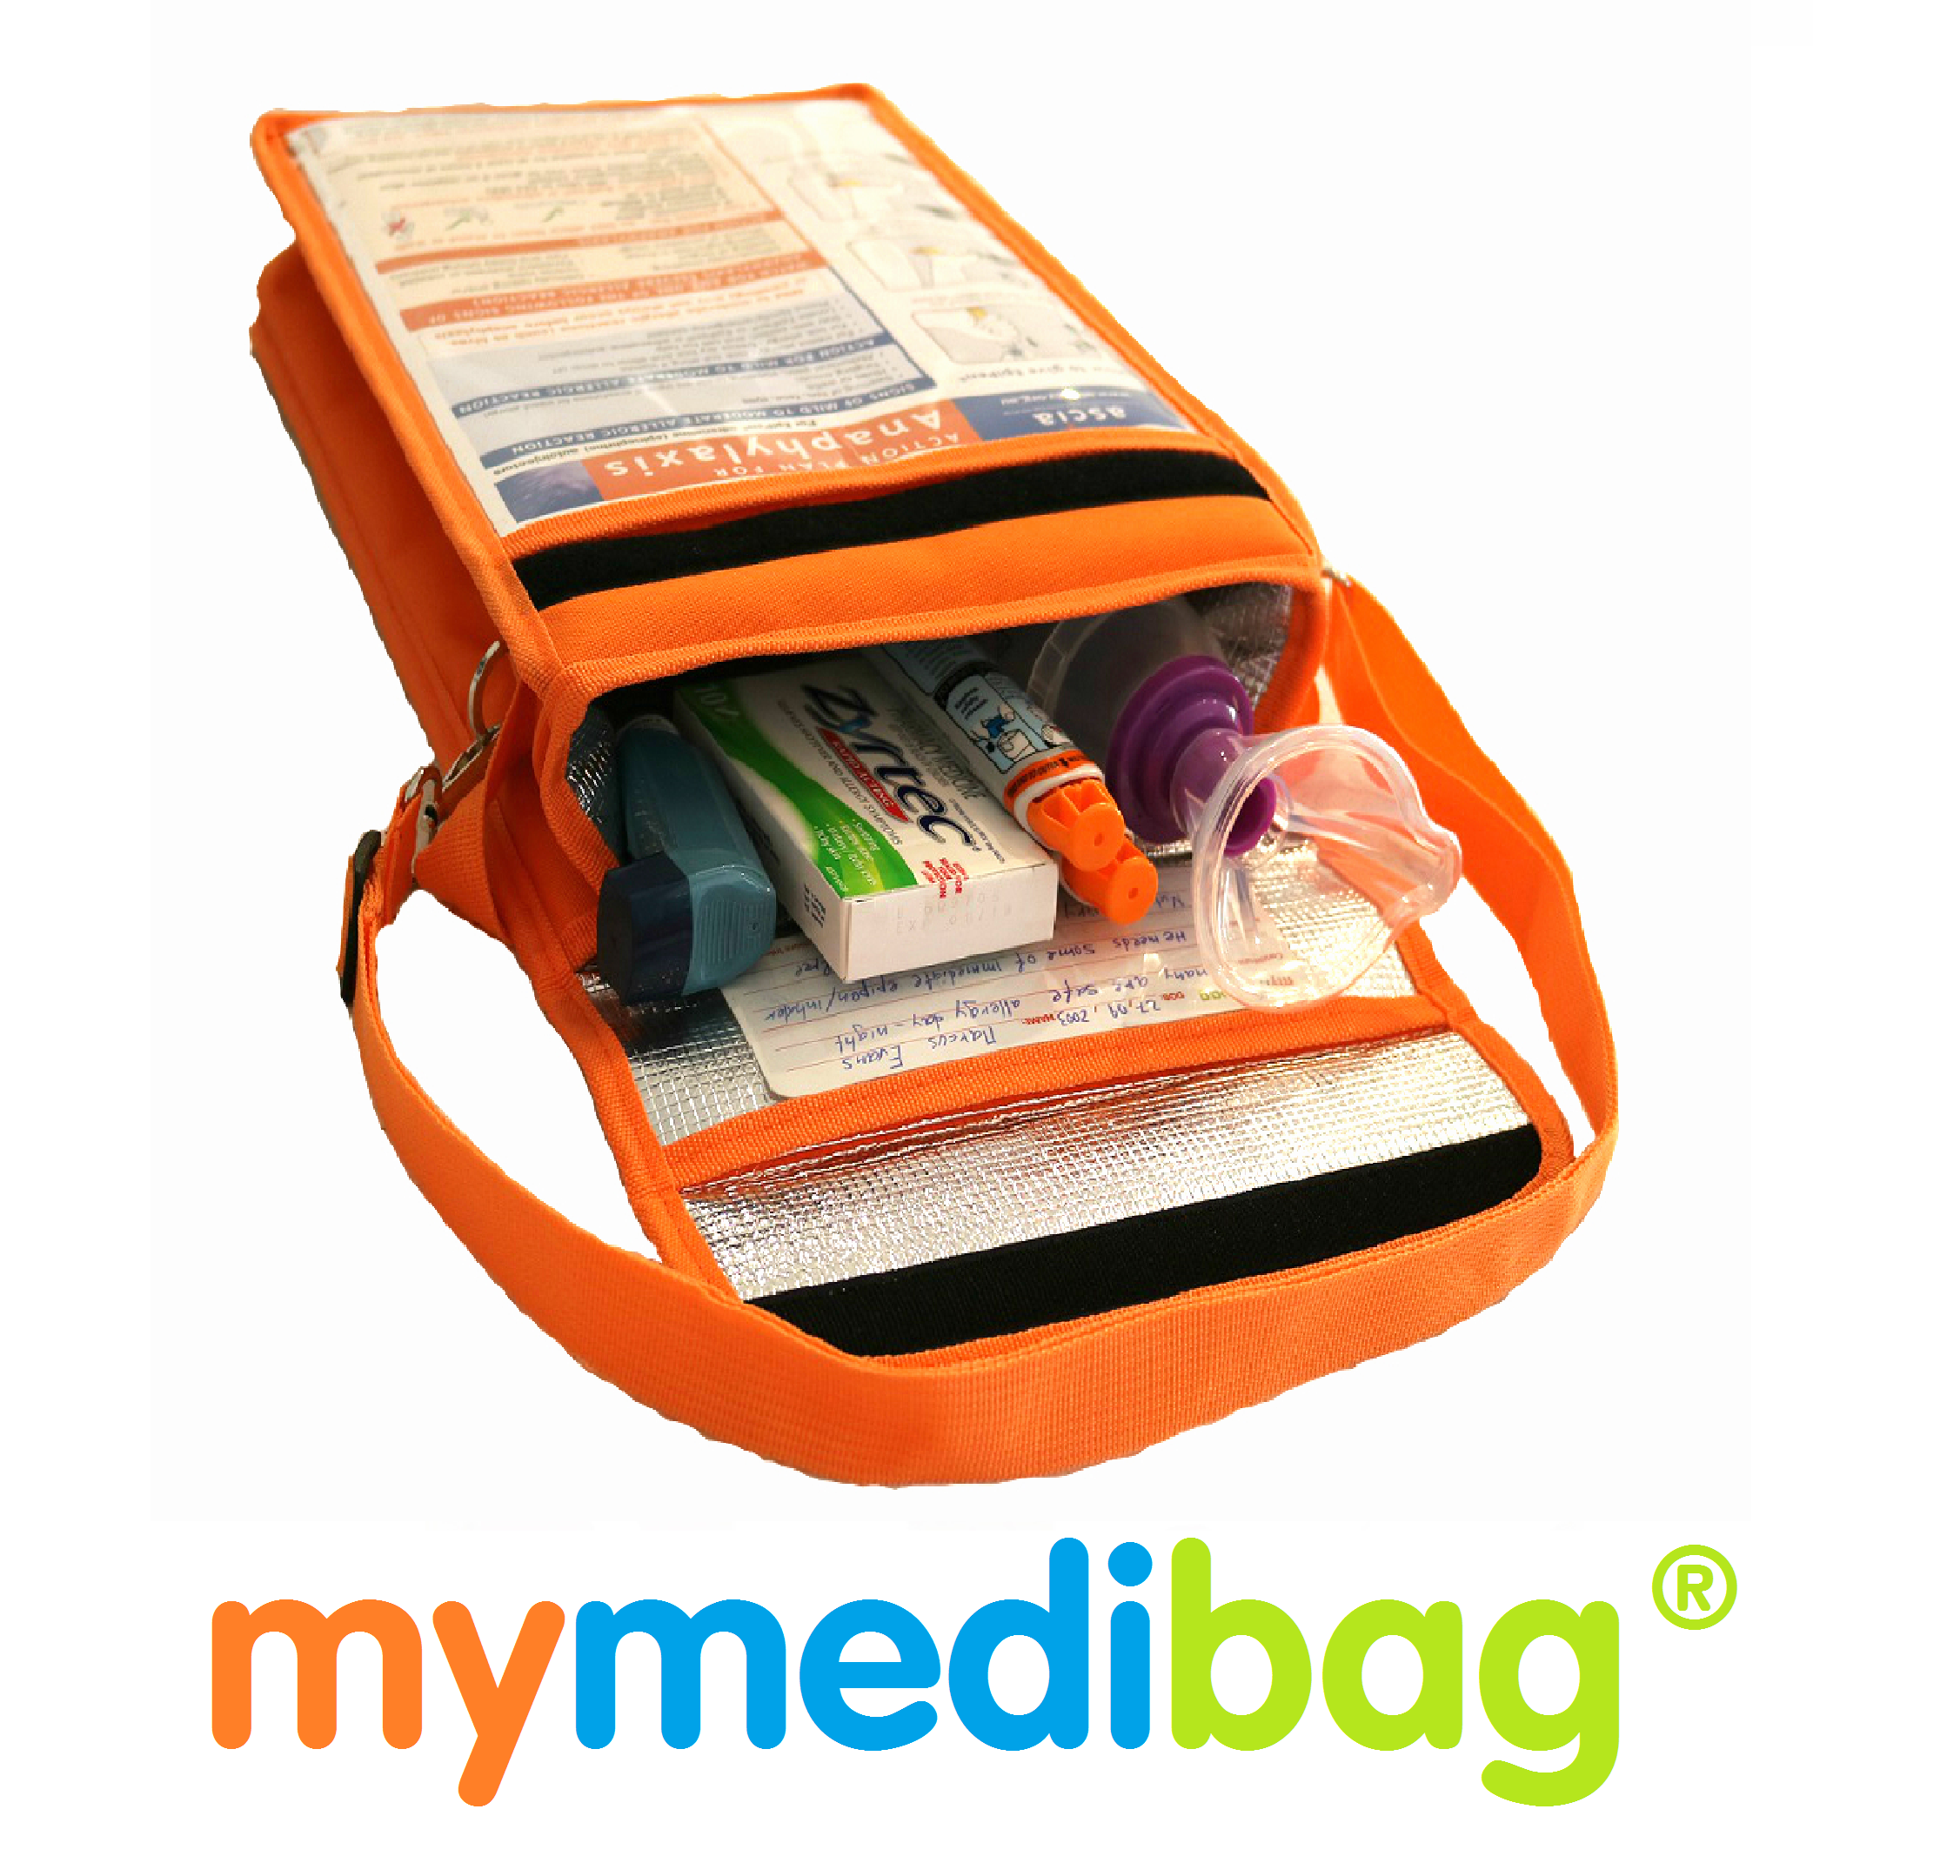 Mymedibag A4 with Medicine